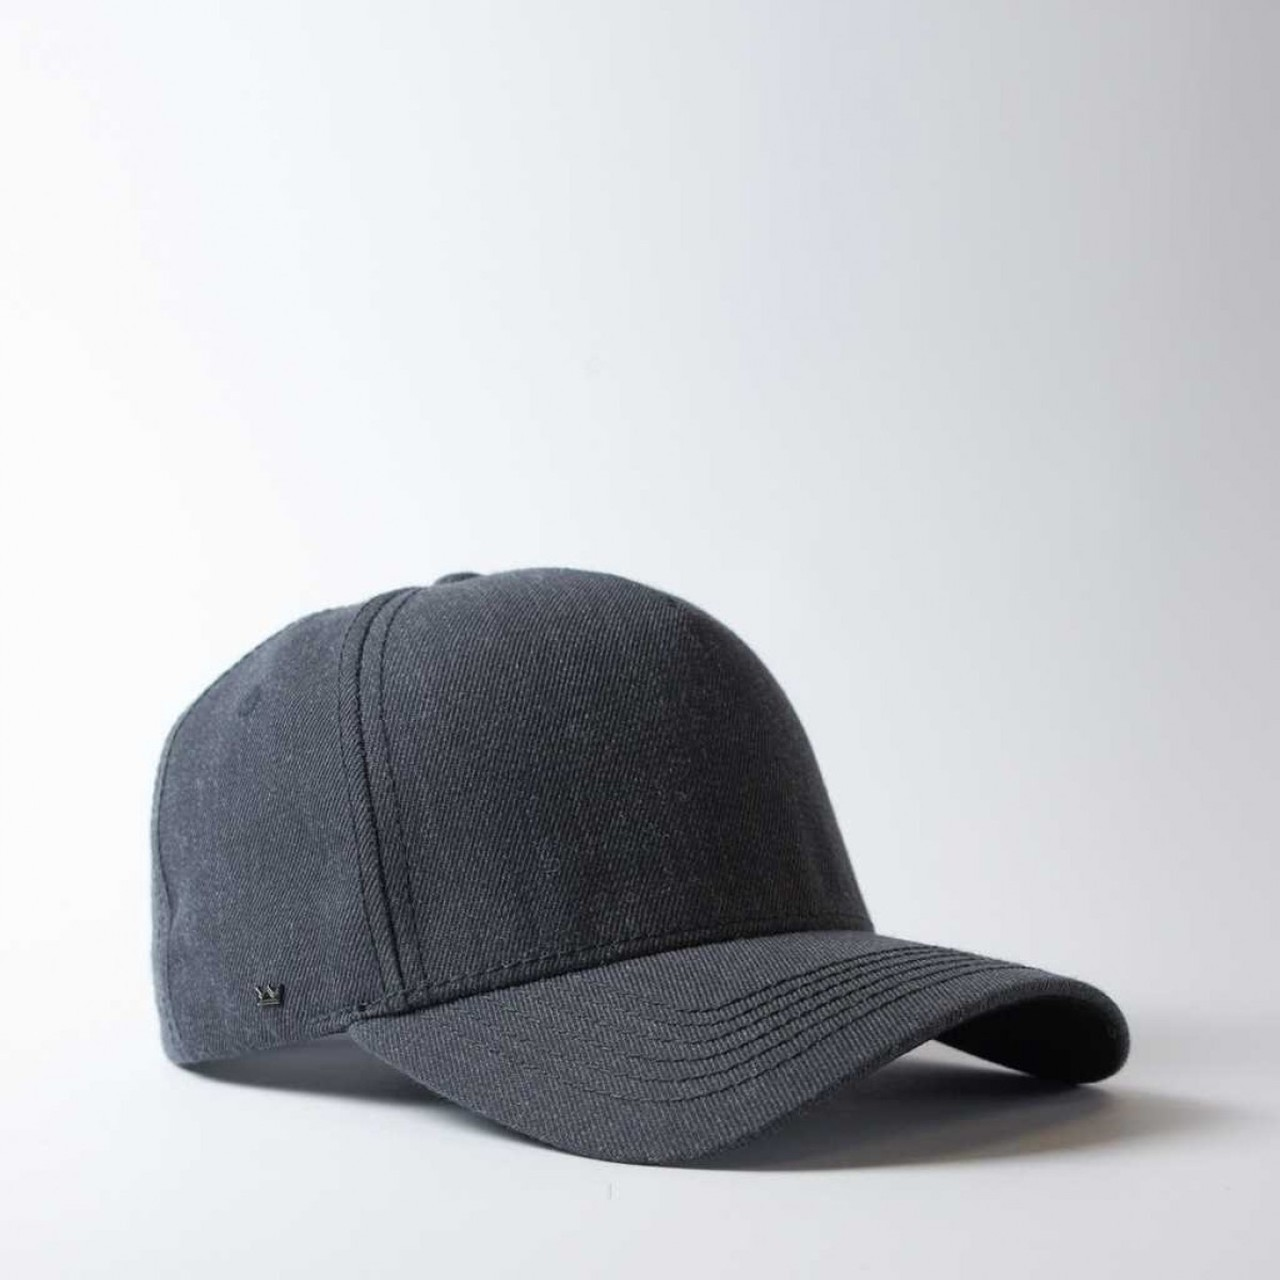 U-Flex Curved Peak 5 Panel